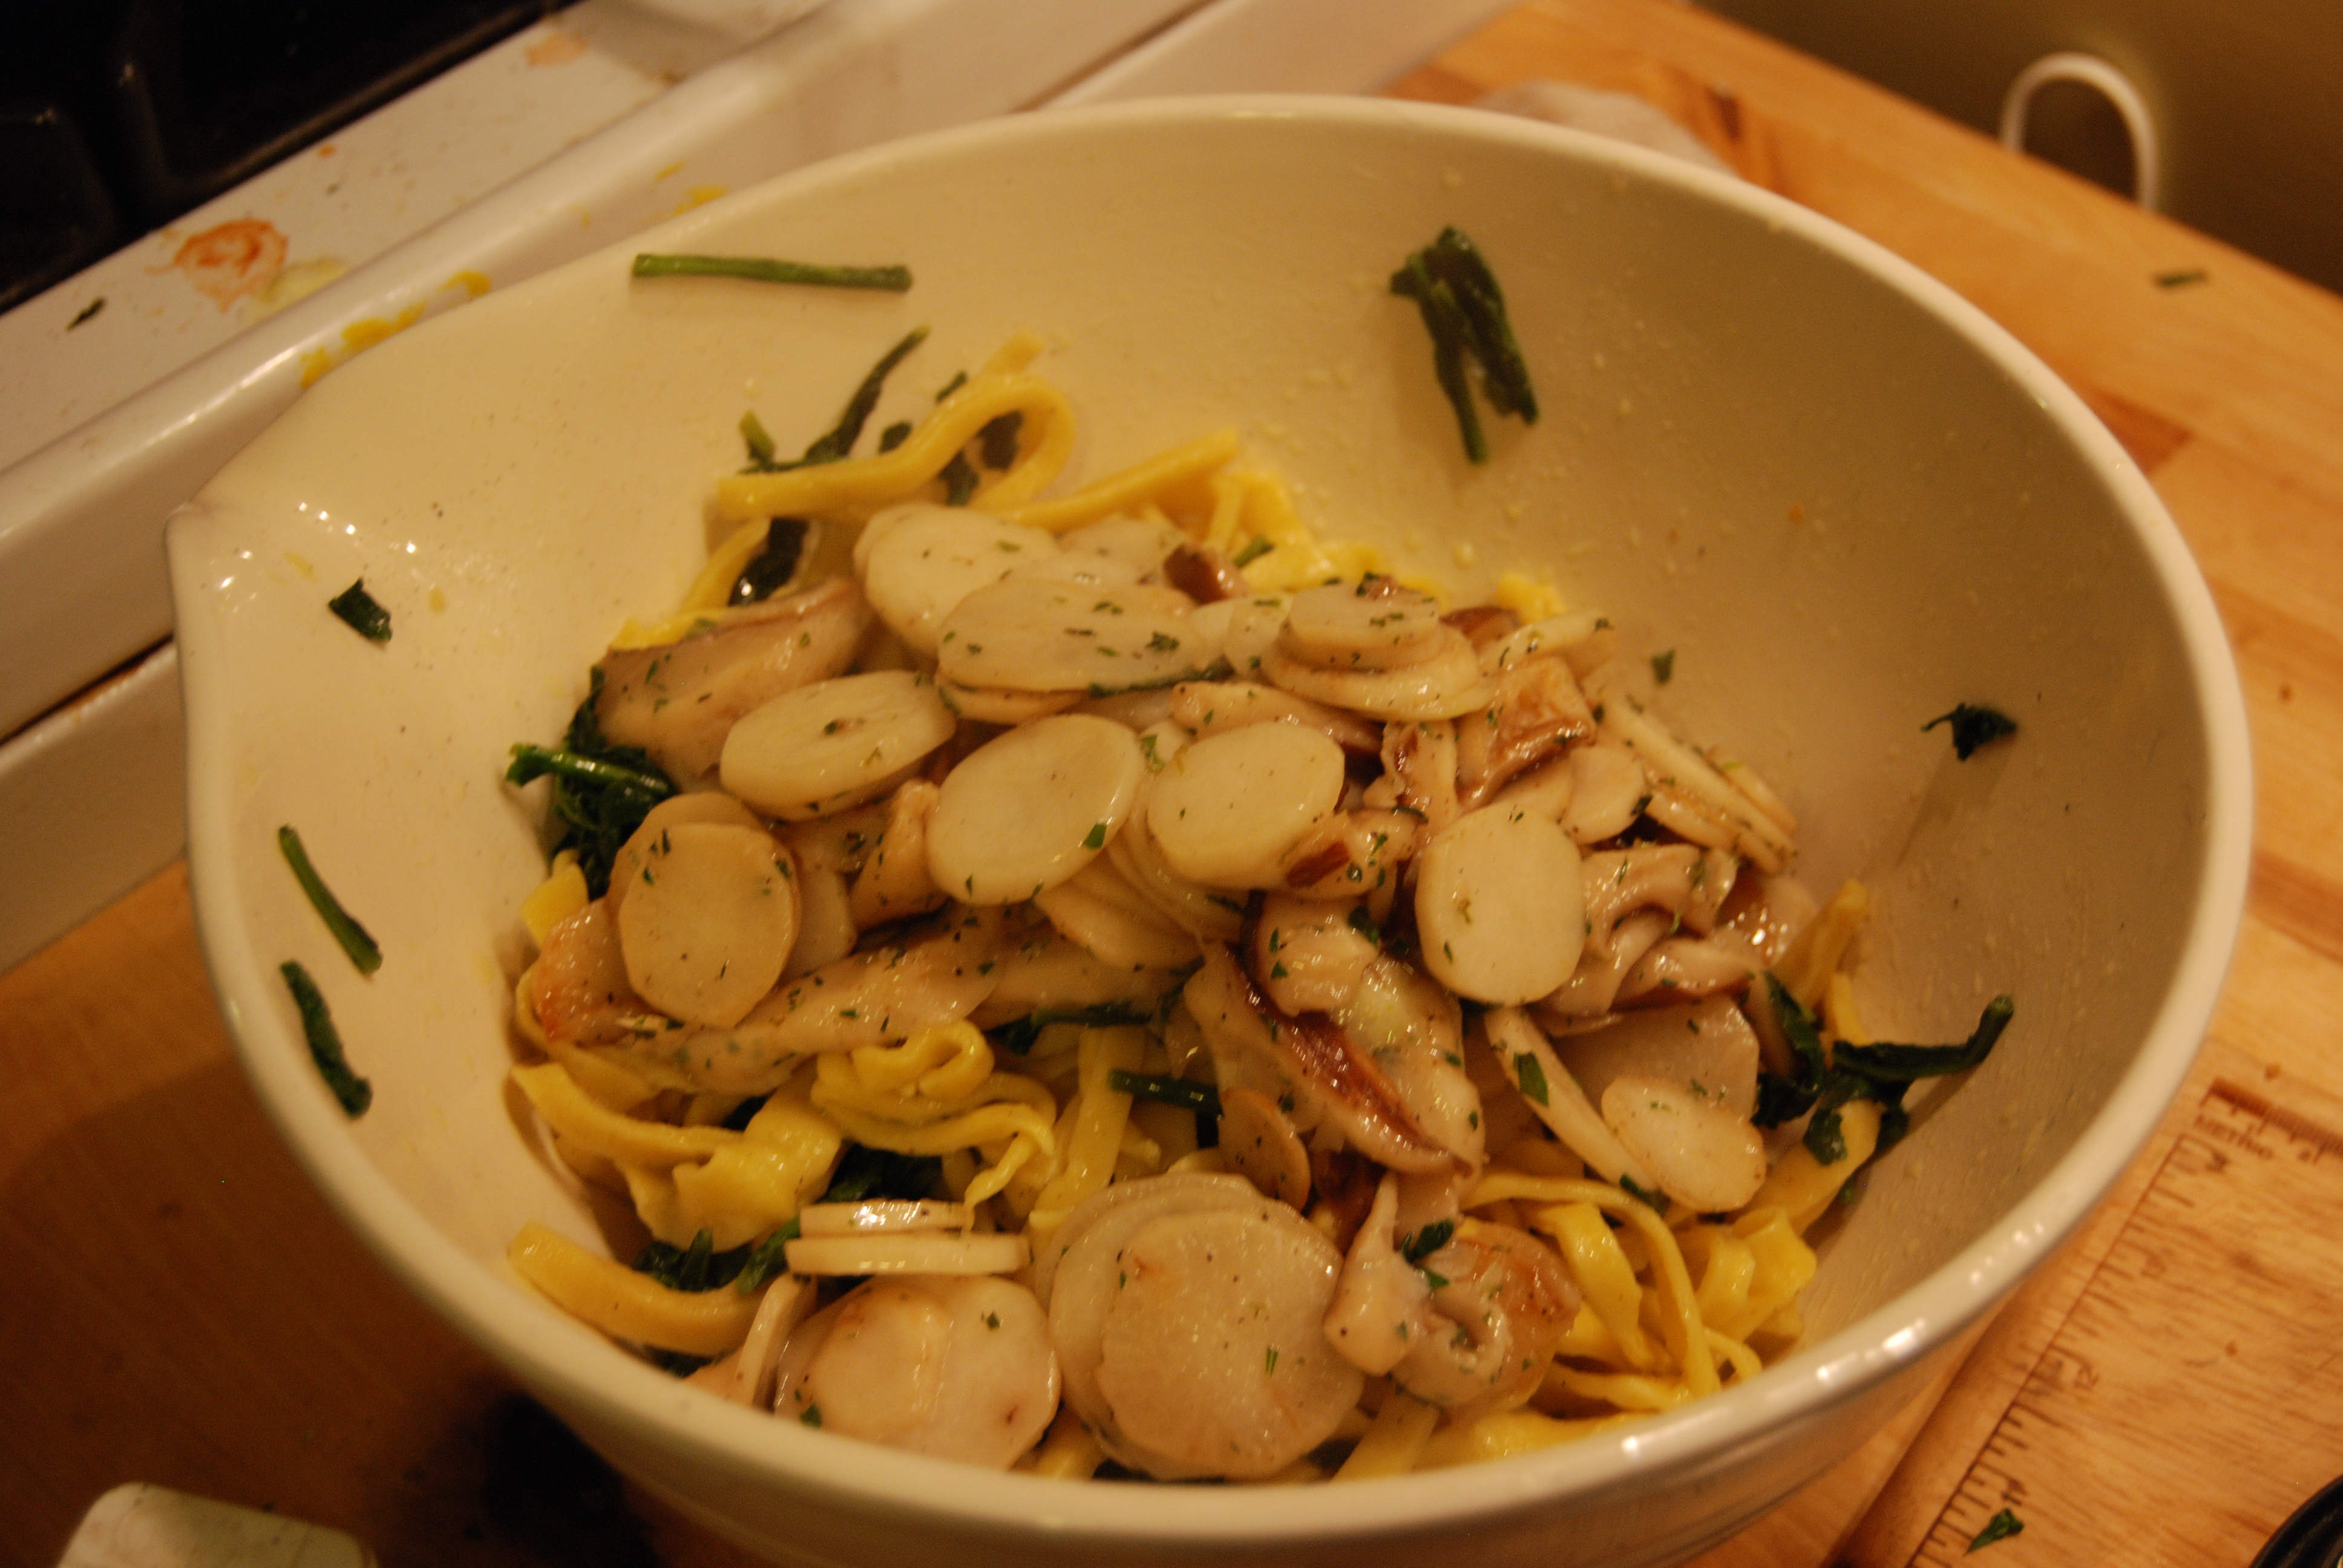 Toss the turnips and the turnip greens into the pasta and drizzle with ...